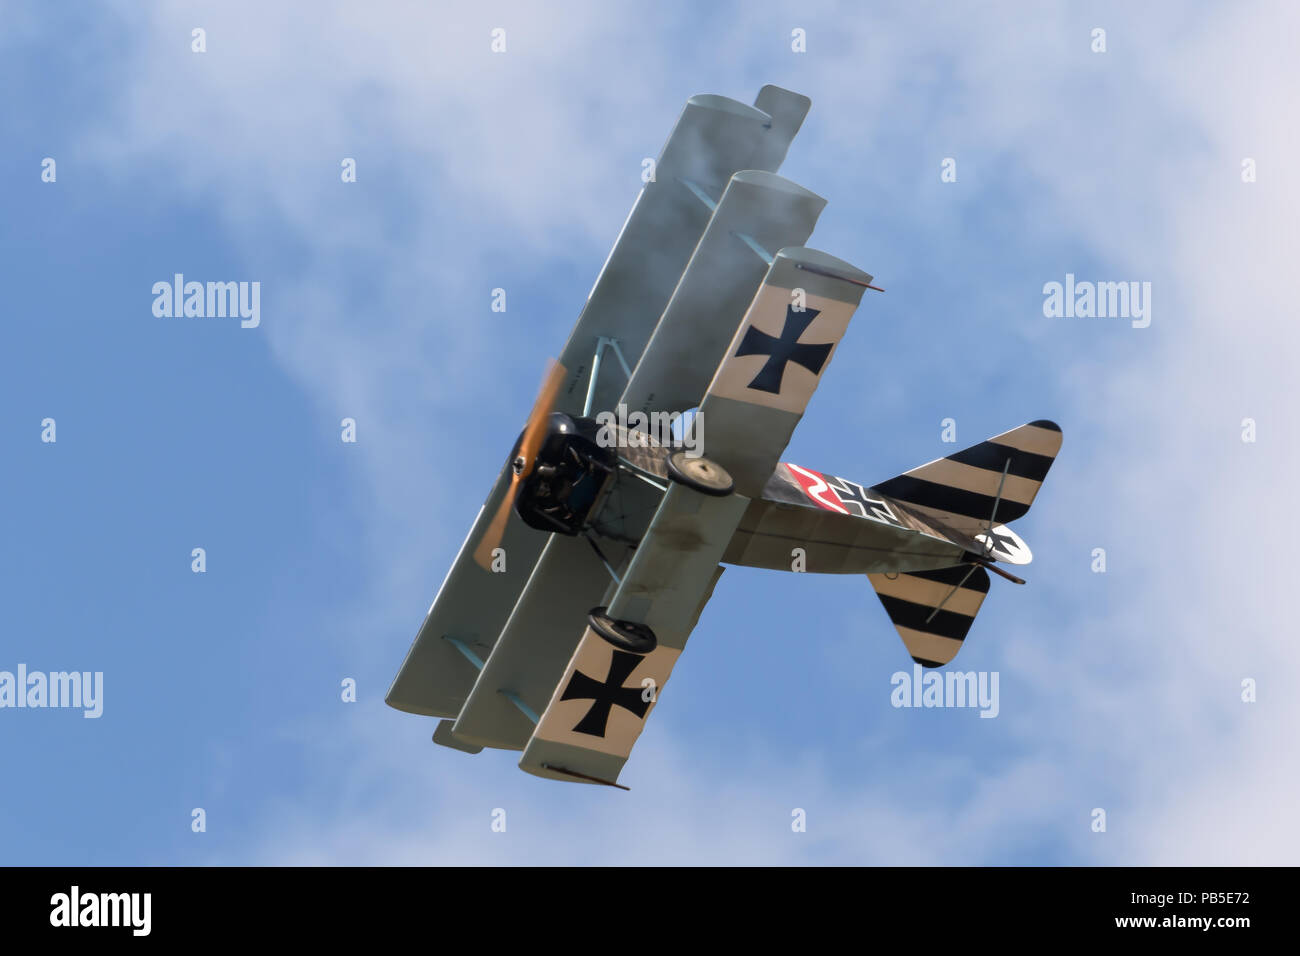 WW1 Classic Biplanes flying at the Royal International Air Tattoo - Stock Image